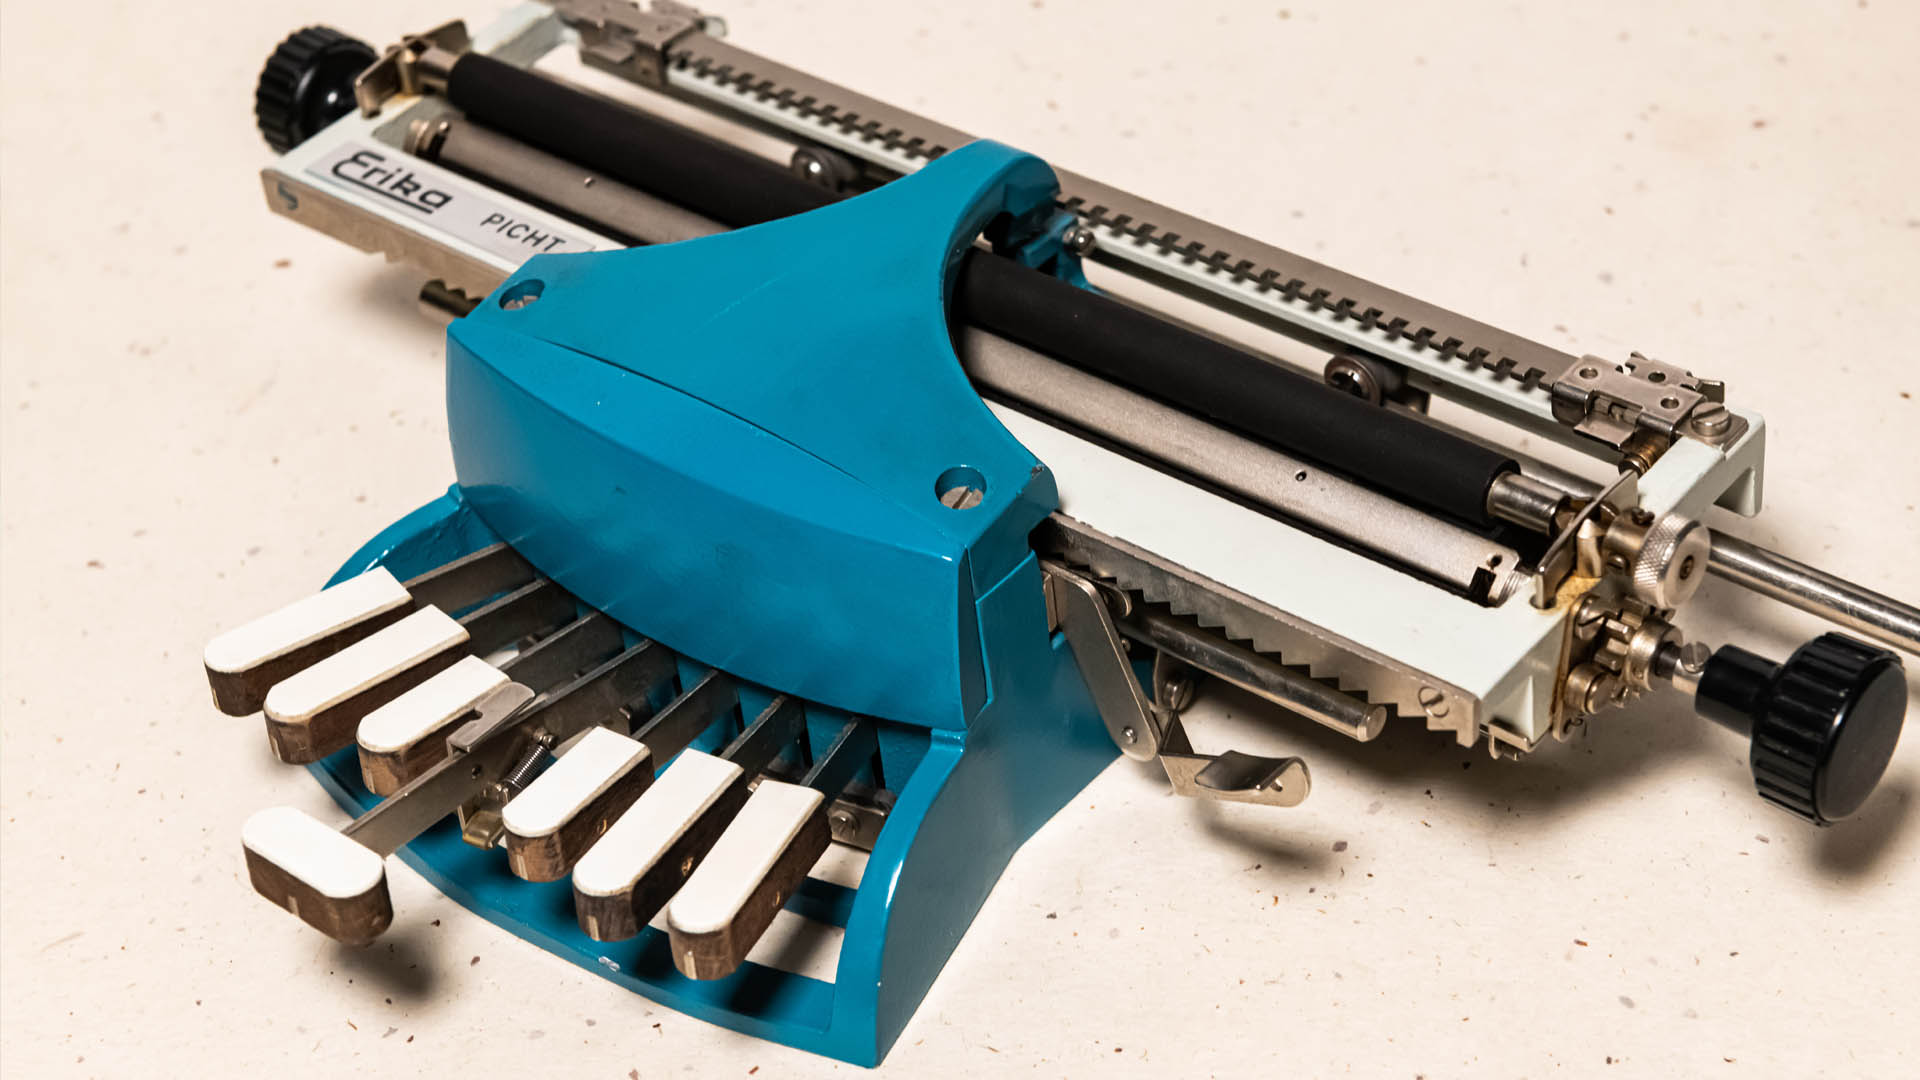 Braillewriter with a blue metal frame, a bright metal paper carriage , and seven wooden keys topped with white plastic keypads